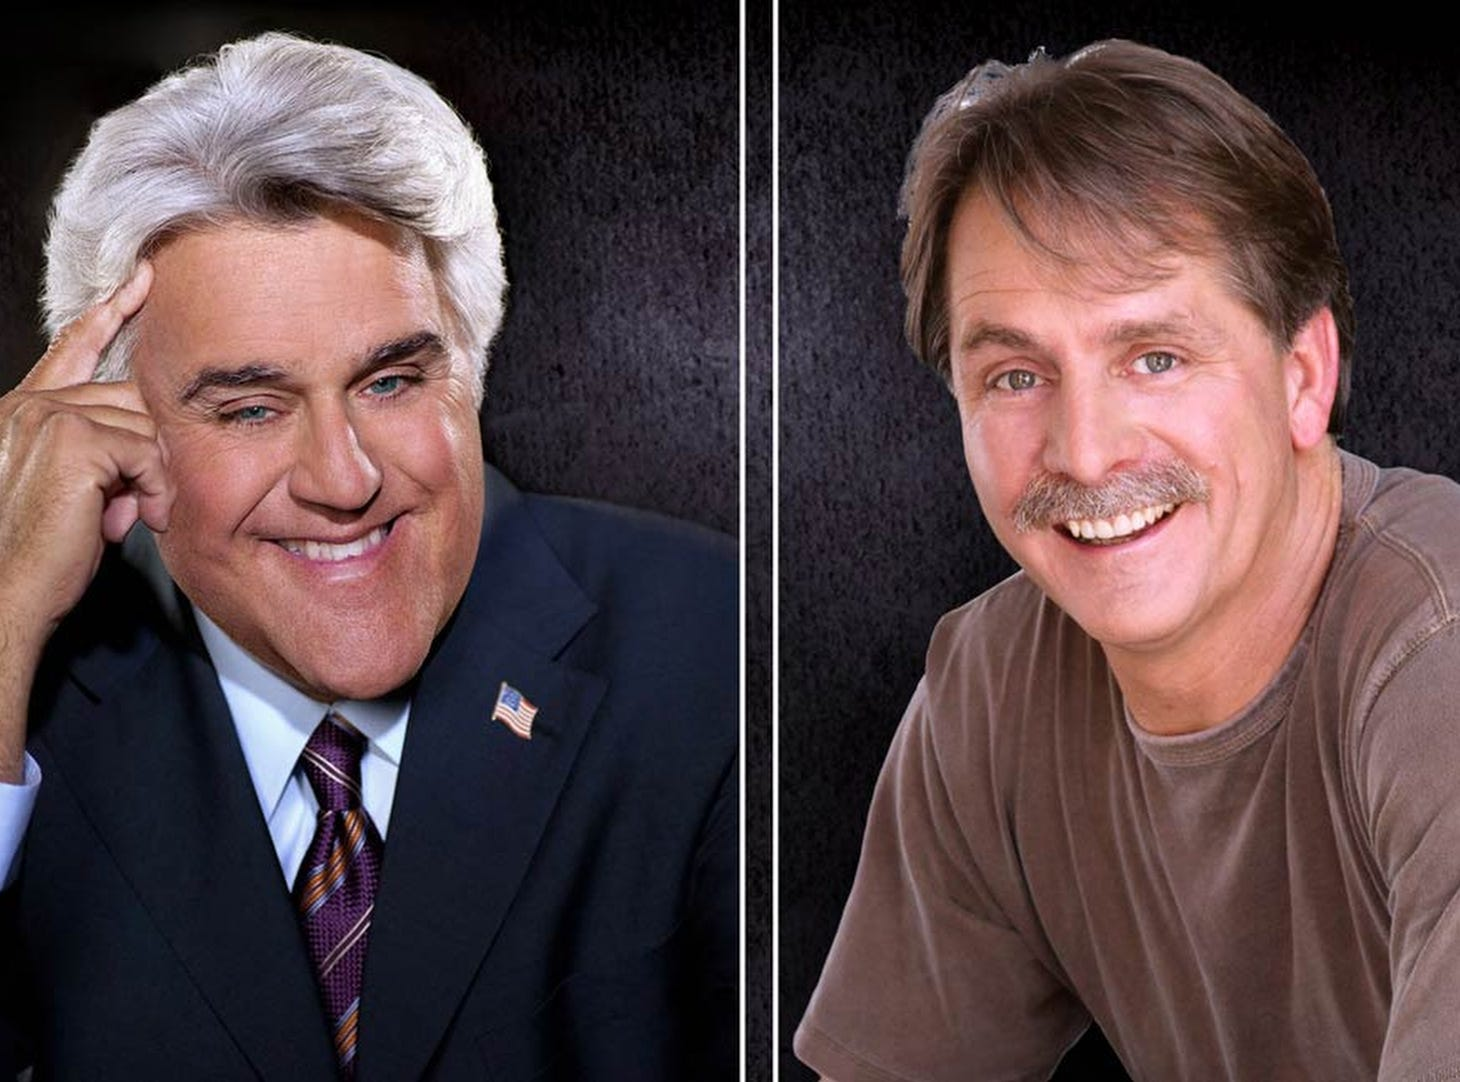 April 14 JAY LENO AND JEFF FOXWORTHY: 6 p.m. Grand Ole Opry House, $59-$89